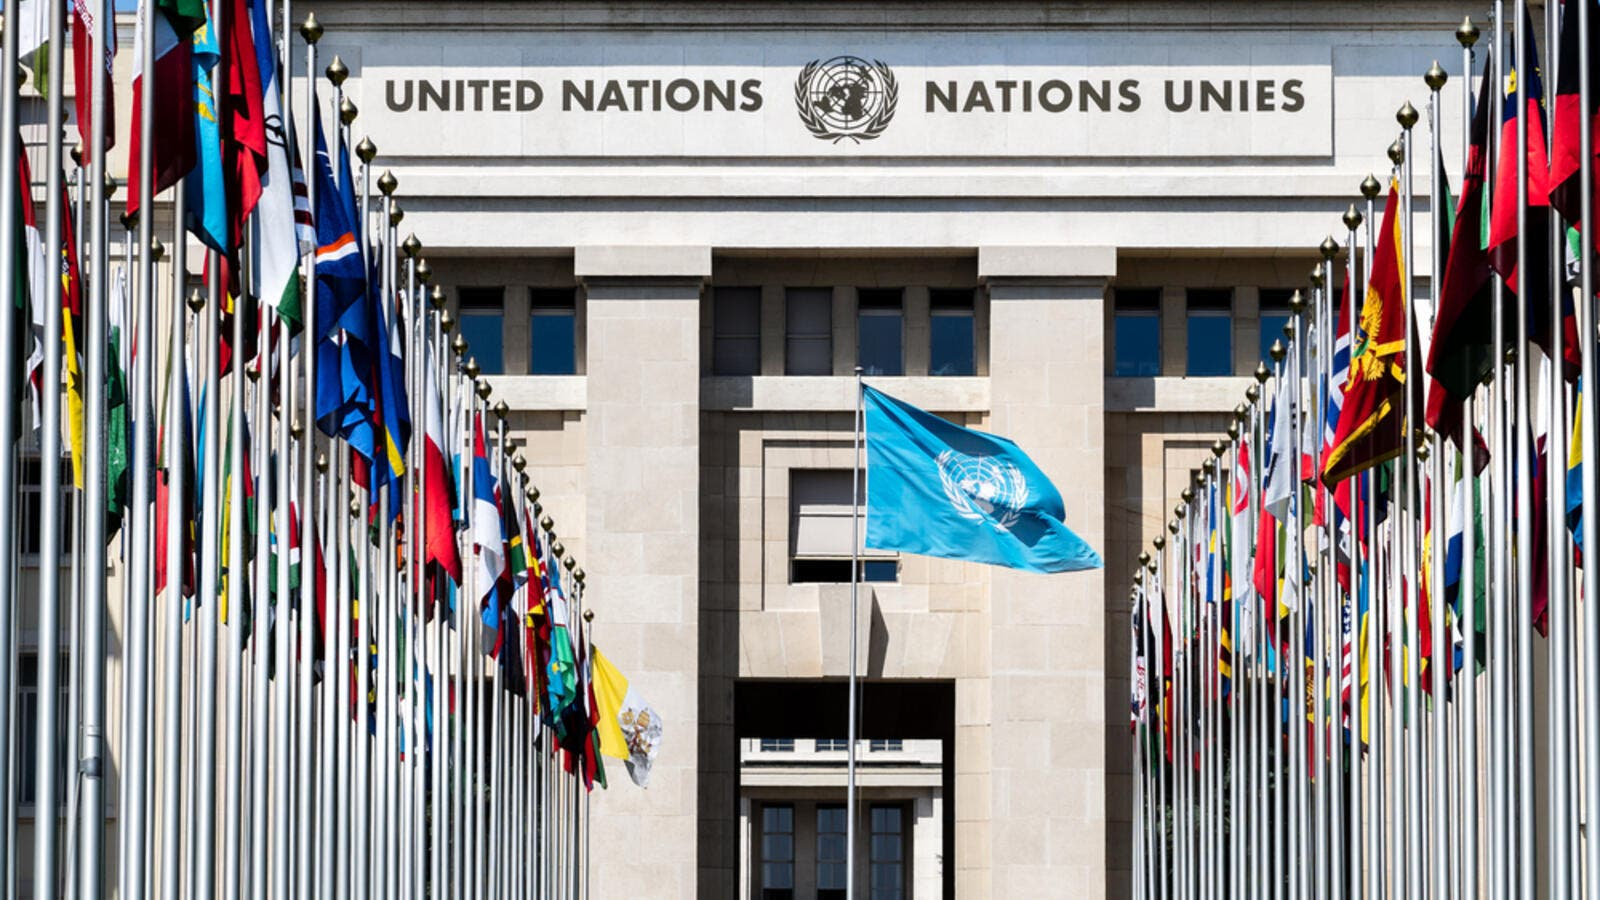 National flags at the entrance in UN office at Geneva, Switzerland. (Shutterstock/ File Photo)